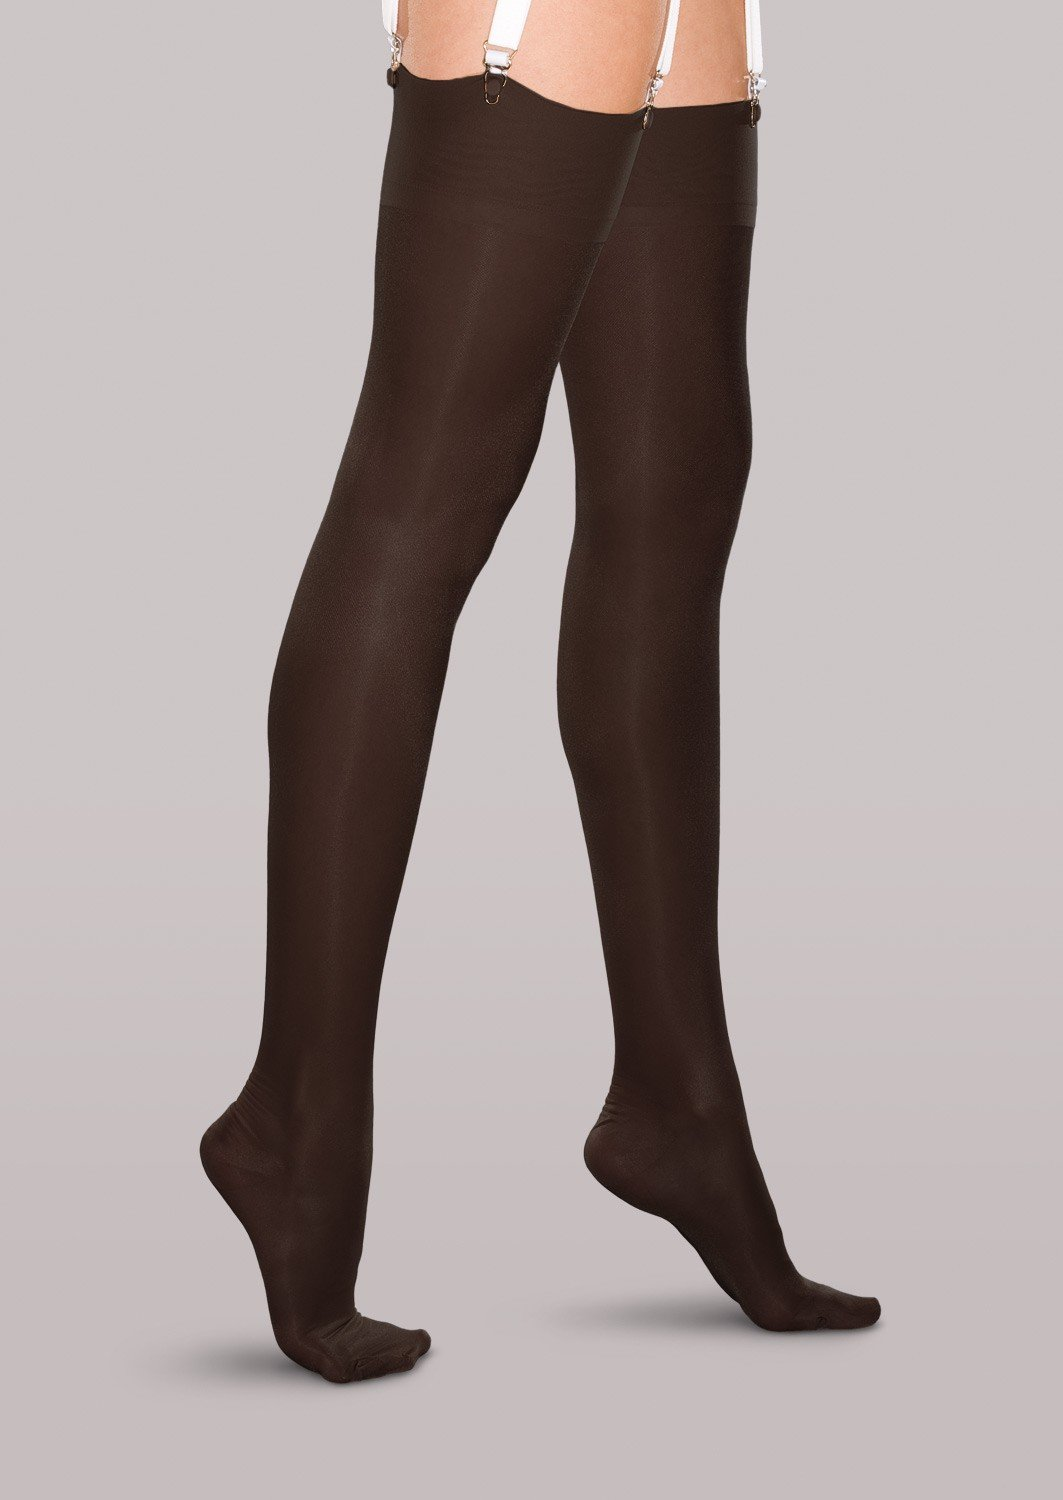 ed16a55b35c6c Amazon.com: Therafirm Women's Mild Support Sheer Thigh High Stockings Size:  X-Large, Color: Black: Health & Personal Care